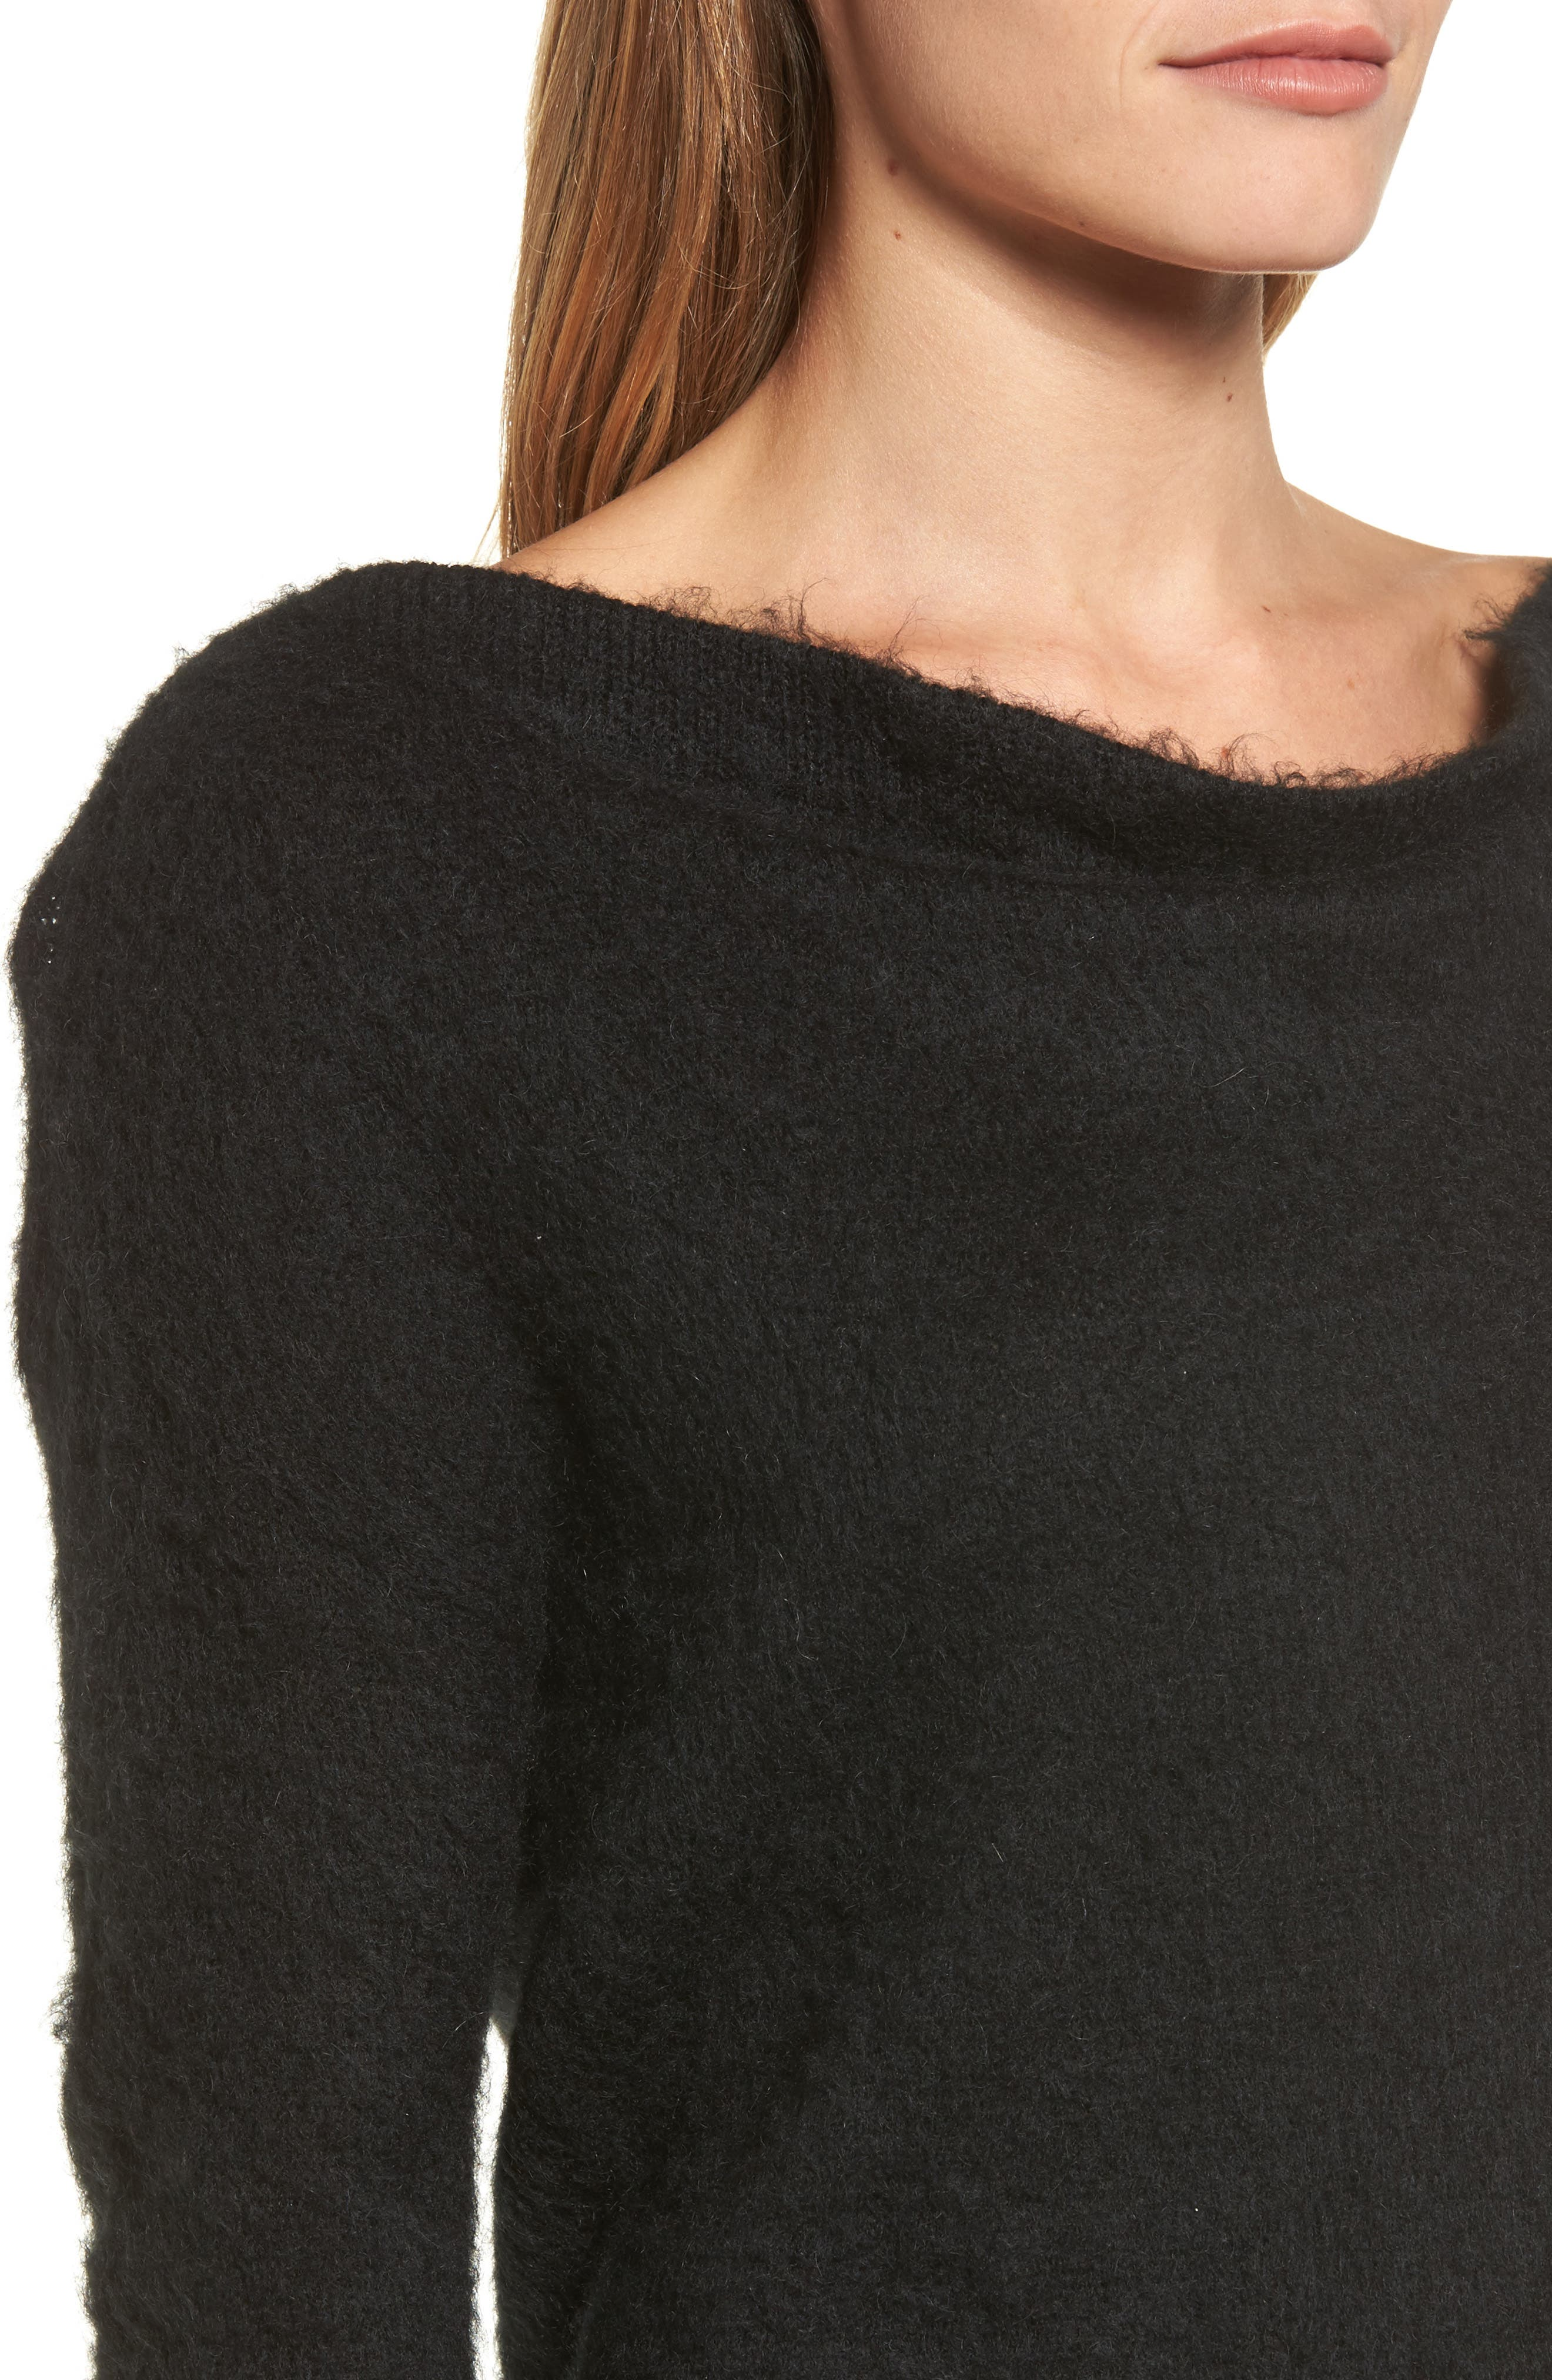 Long Sleeve Brushed Sweater,                             Alternate thumbnail 4, color,                             001